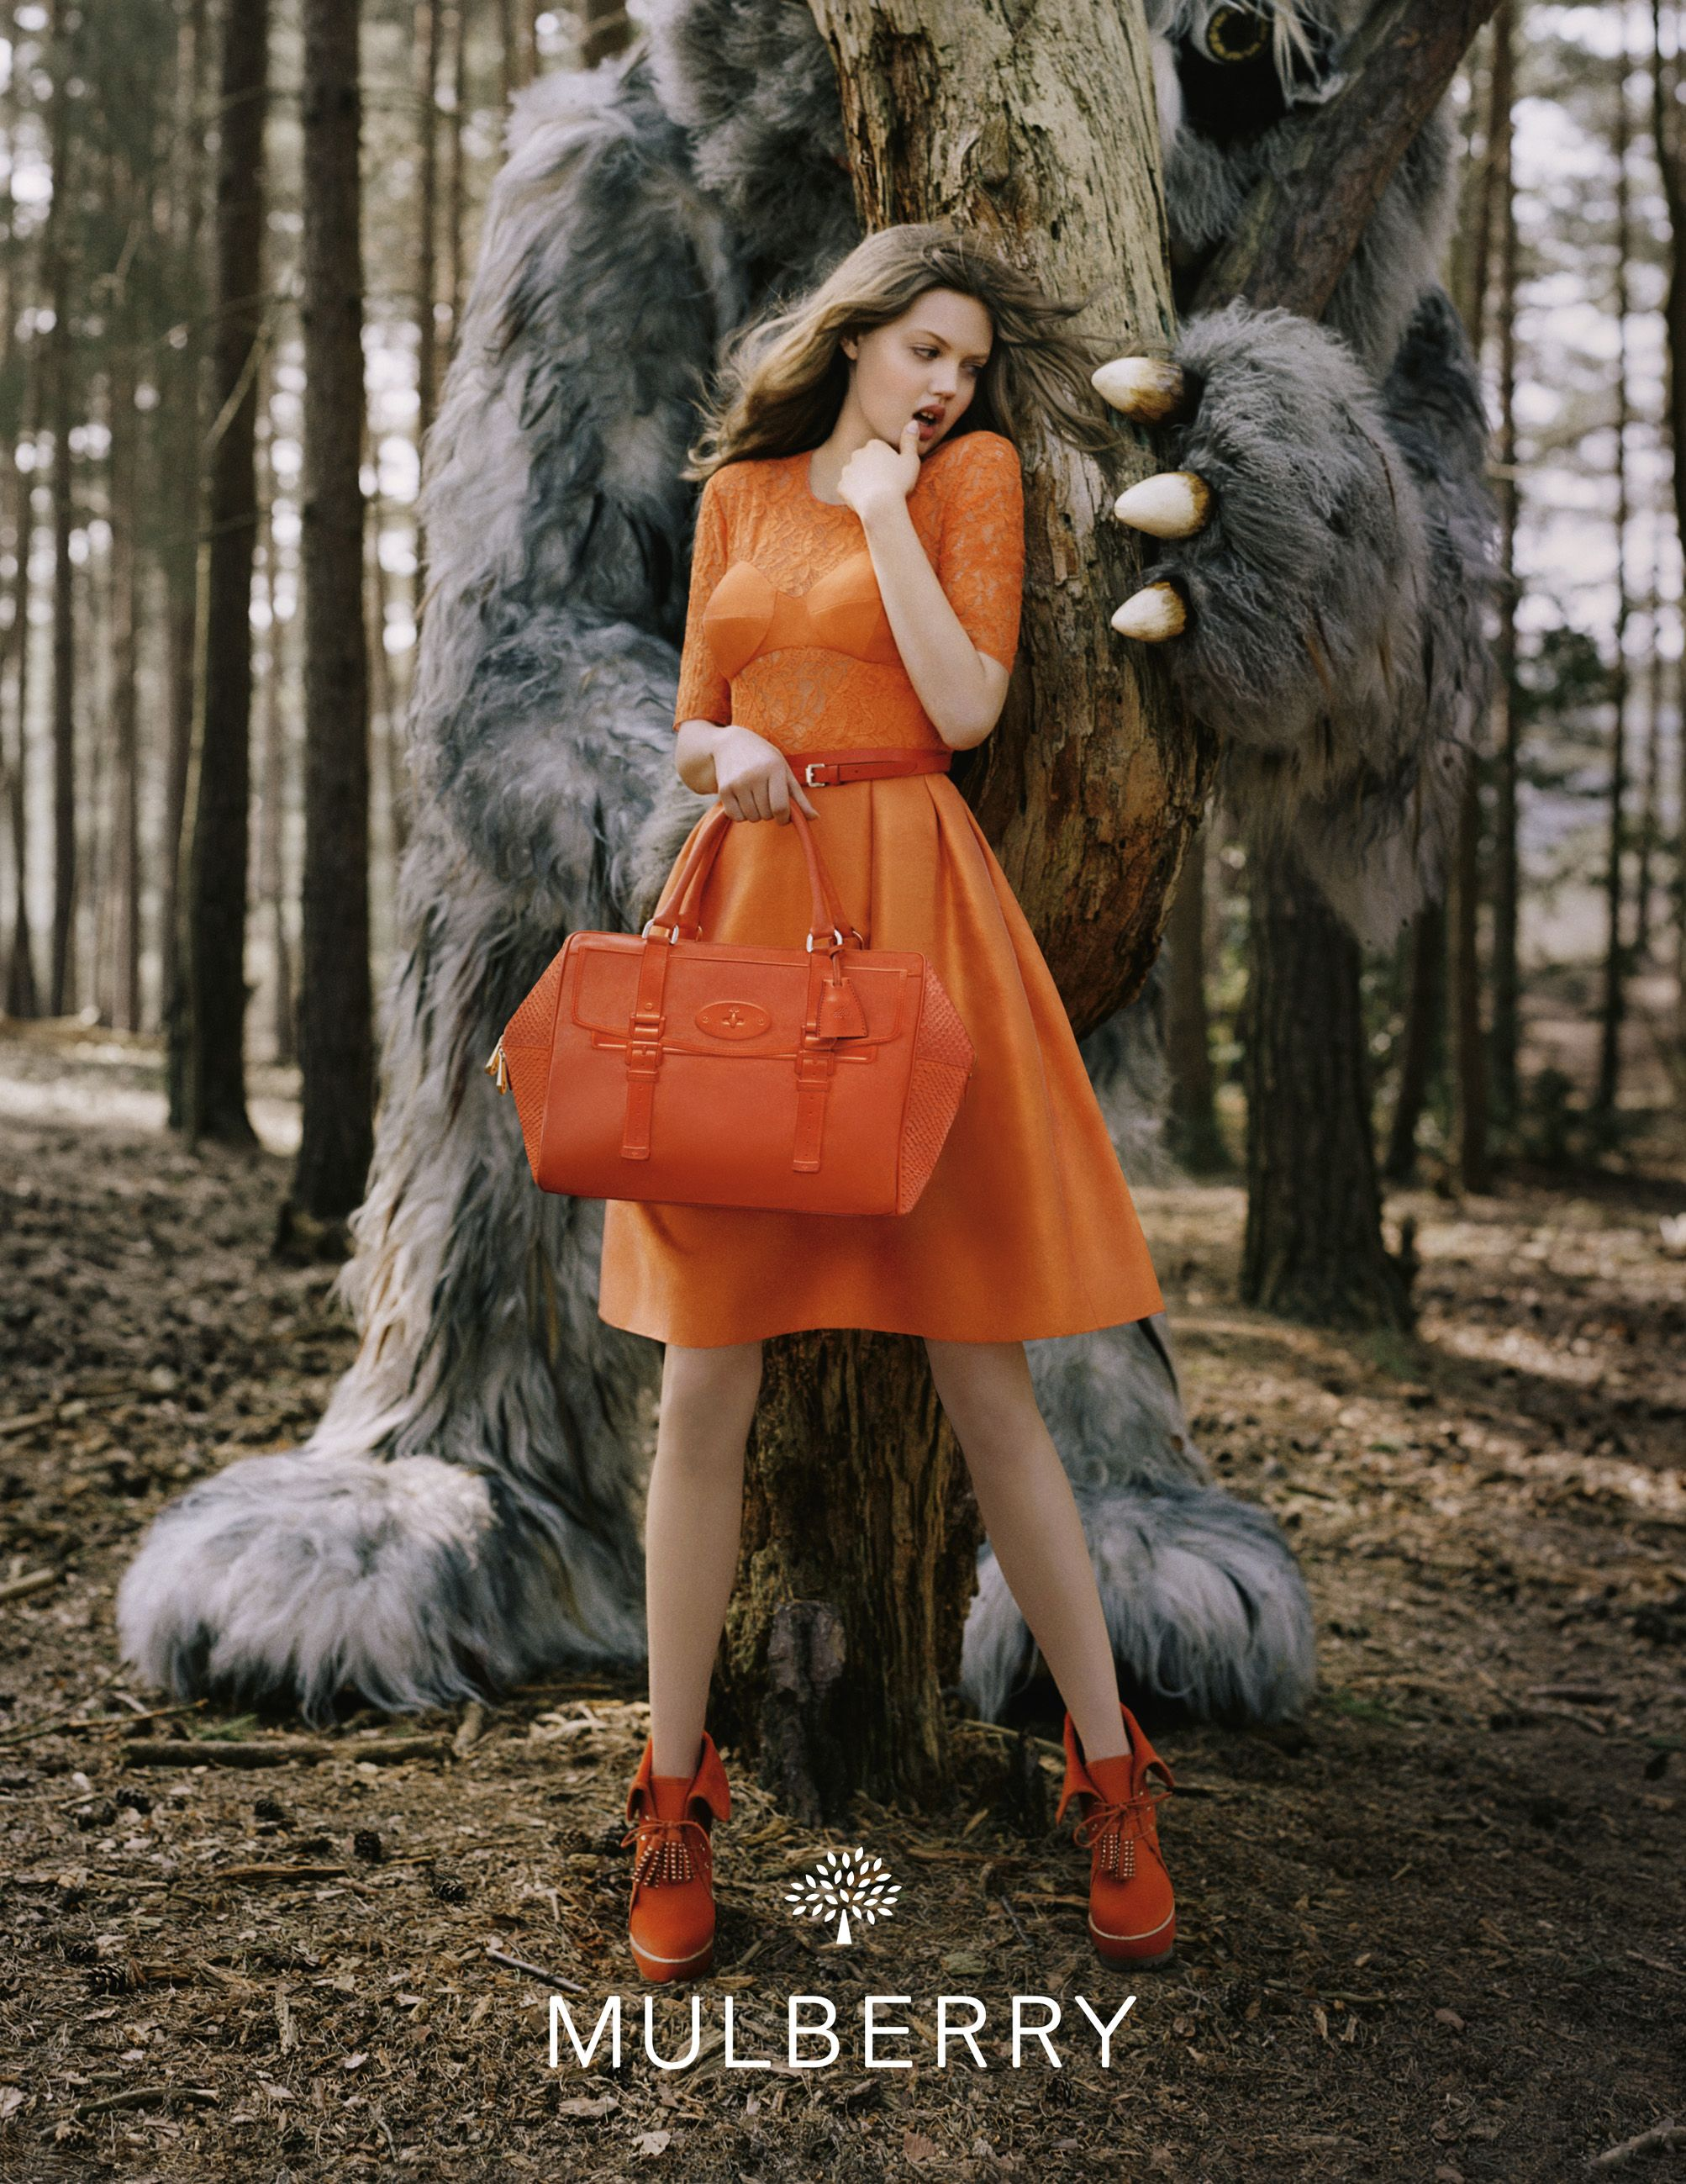 9d59689a48a3 Mulberry AW 12 - Tim Walker   Lindsay Wixon. Love the colour and the ...